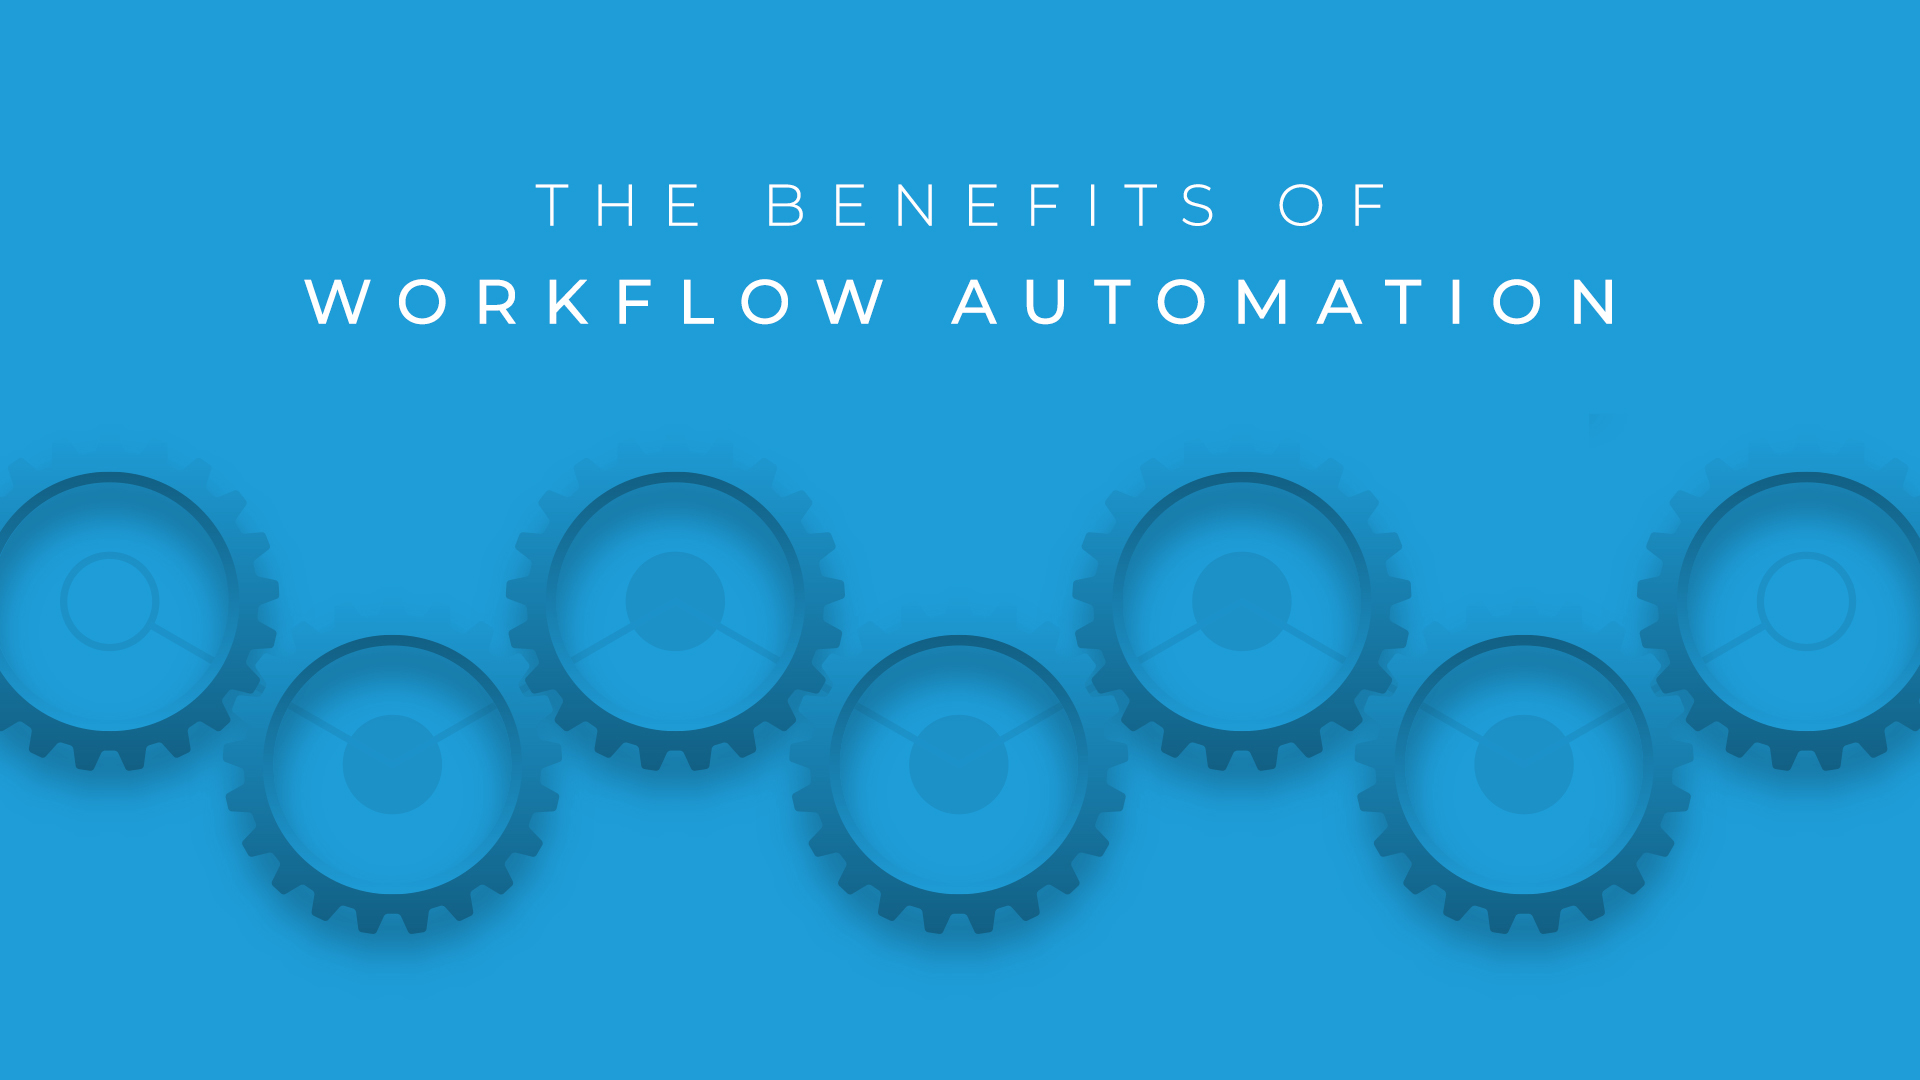 The Benefits of Workflow Automation